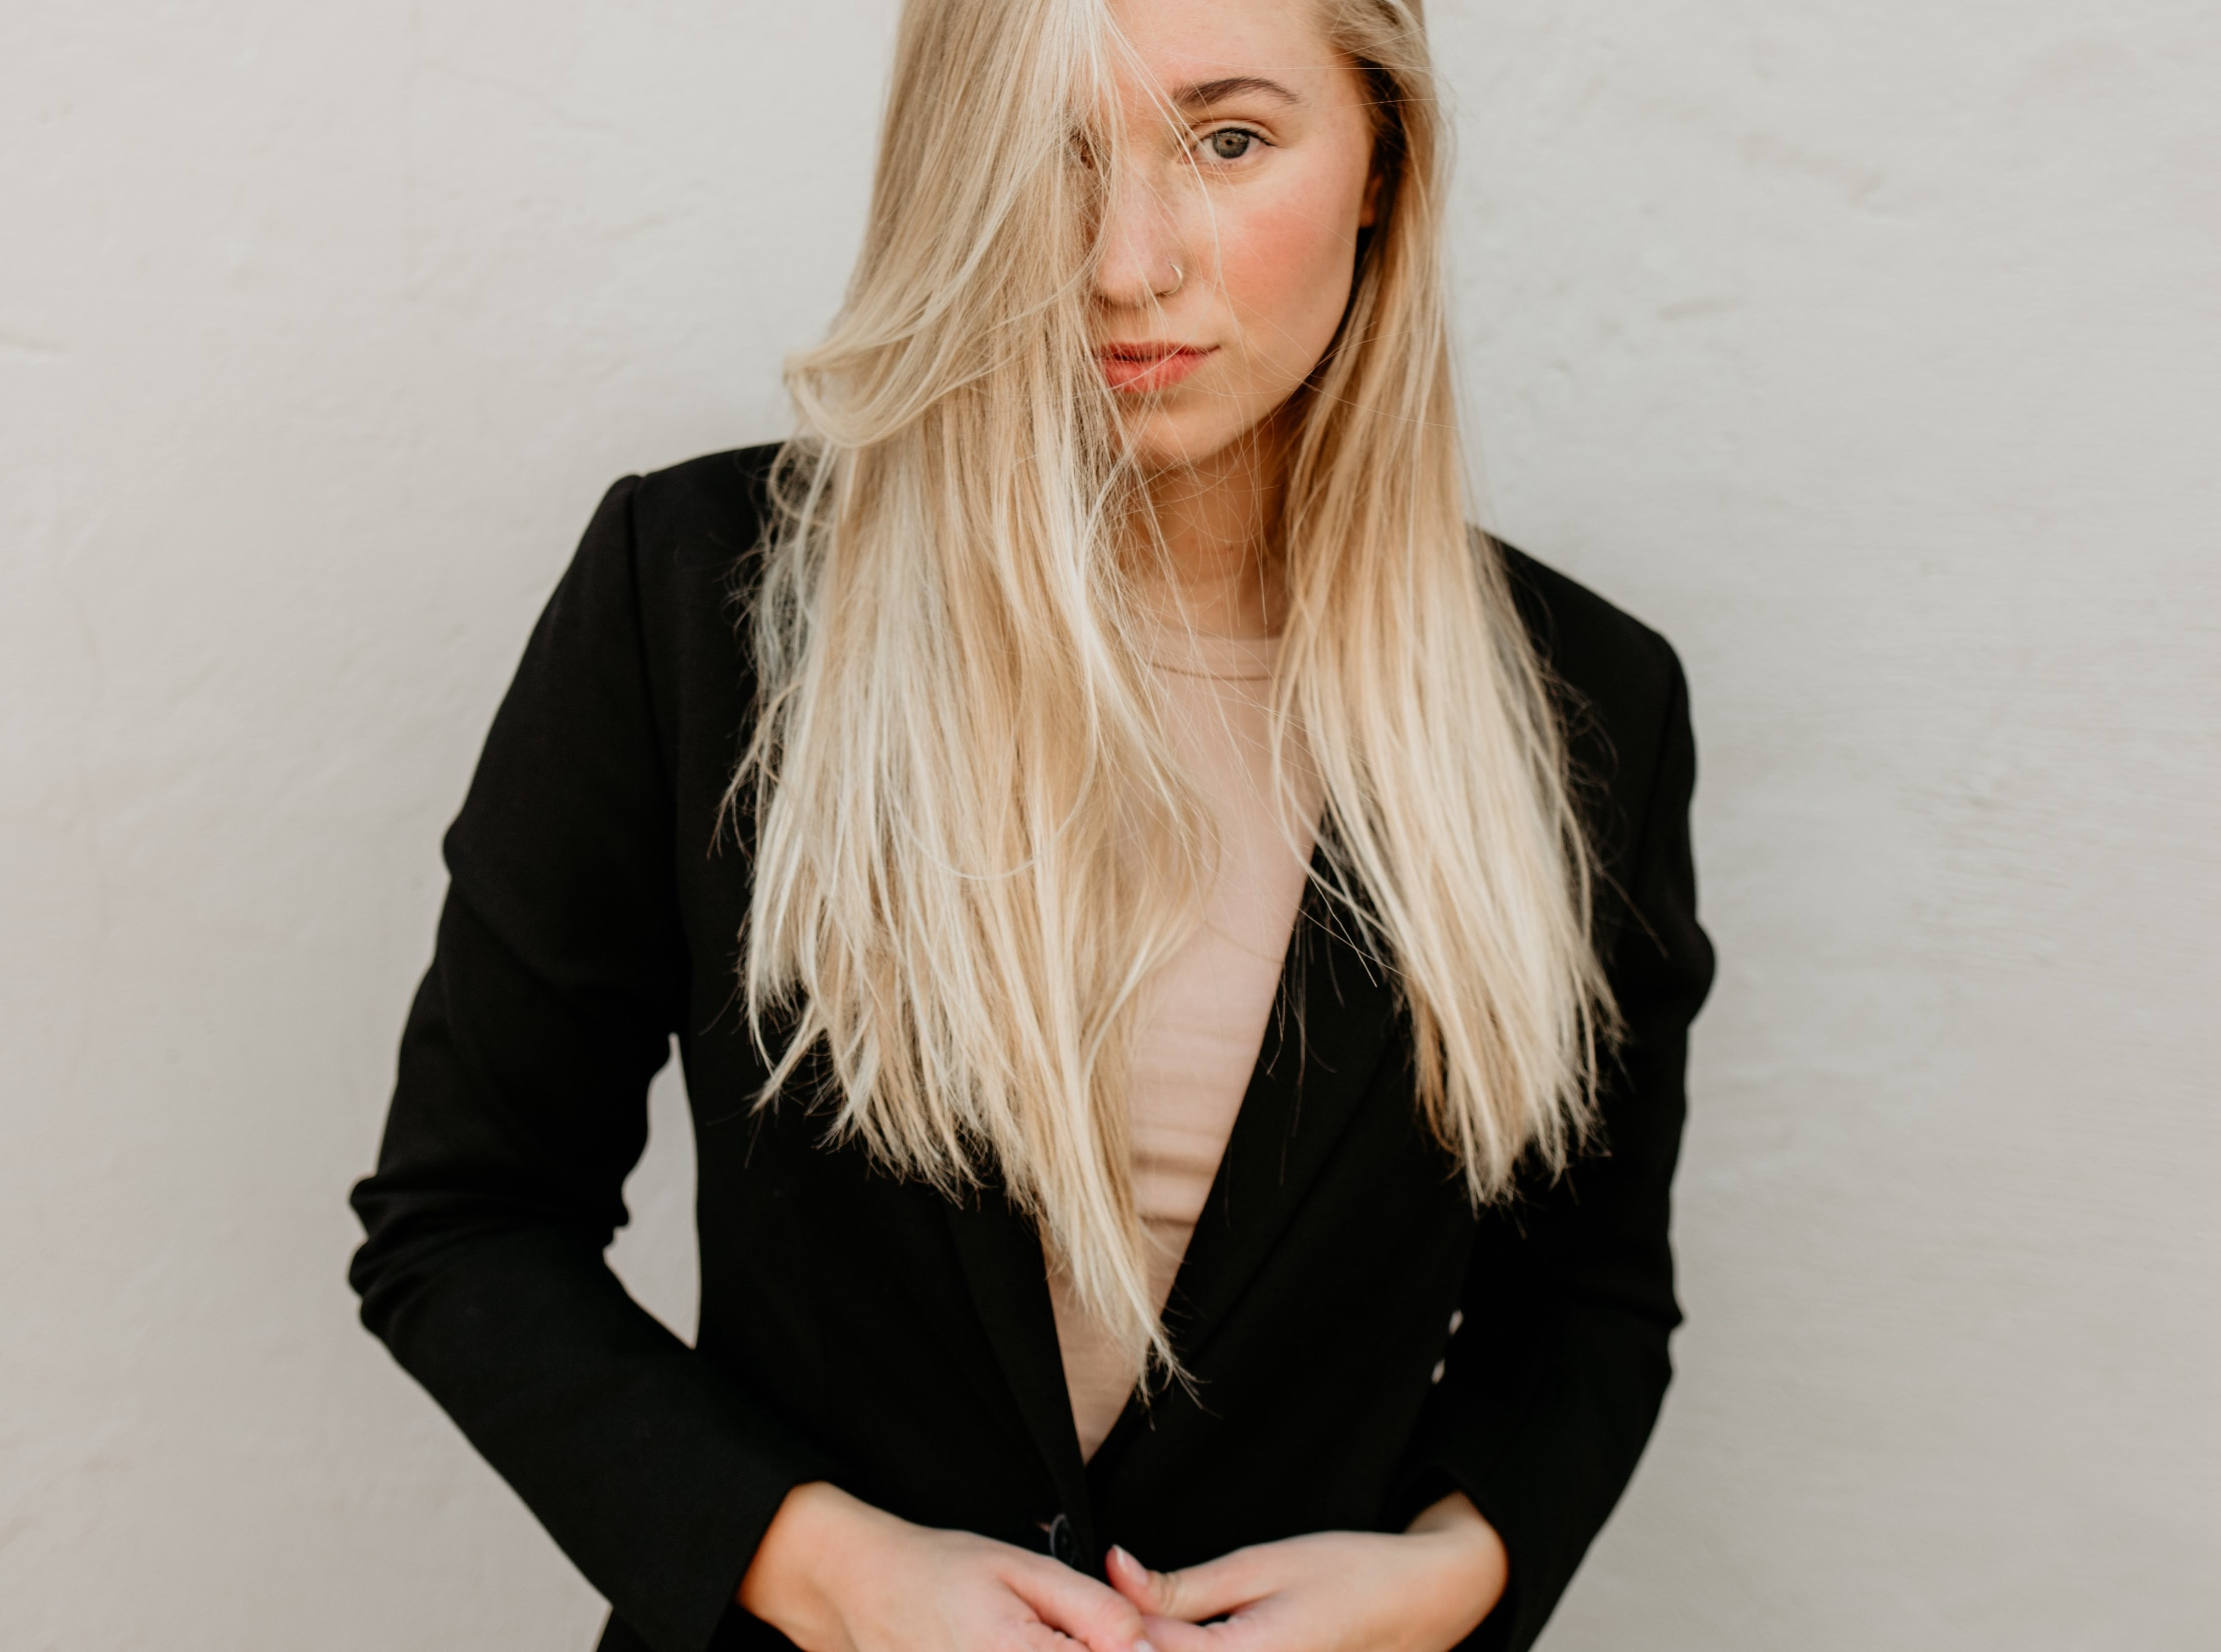 Person with long straight blonde hair, in a black suit jacket